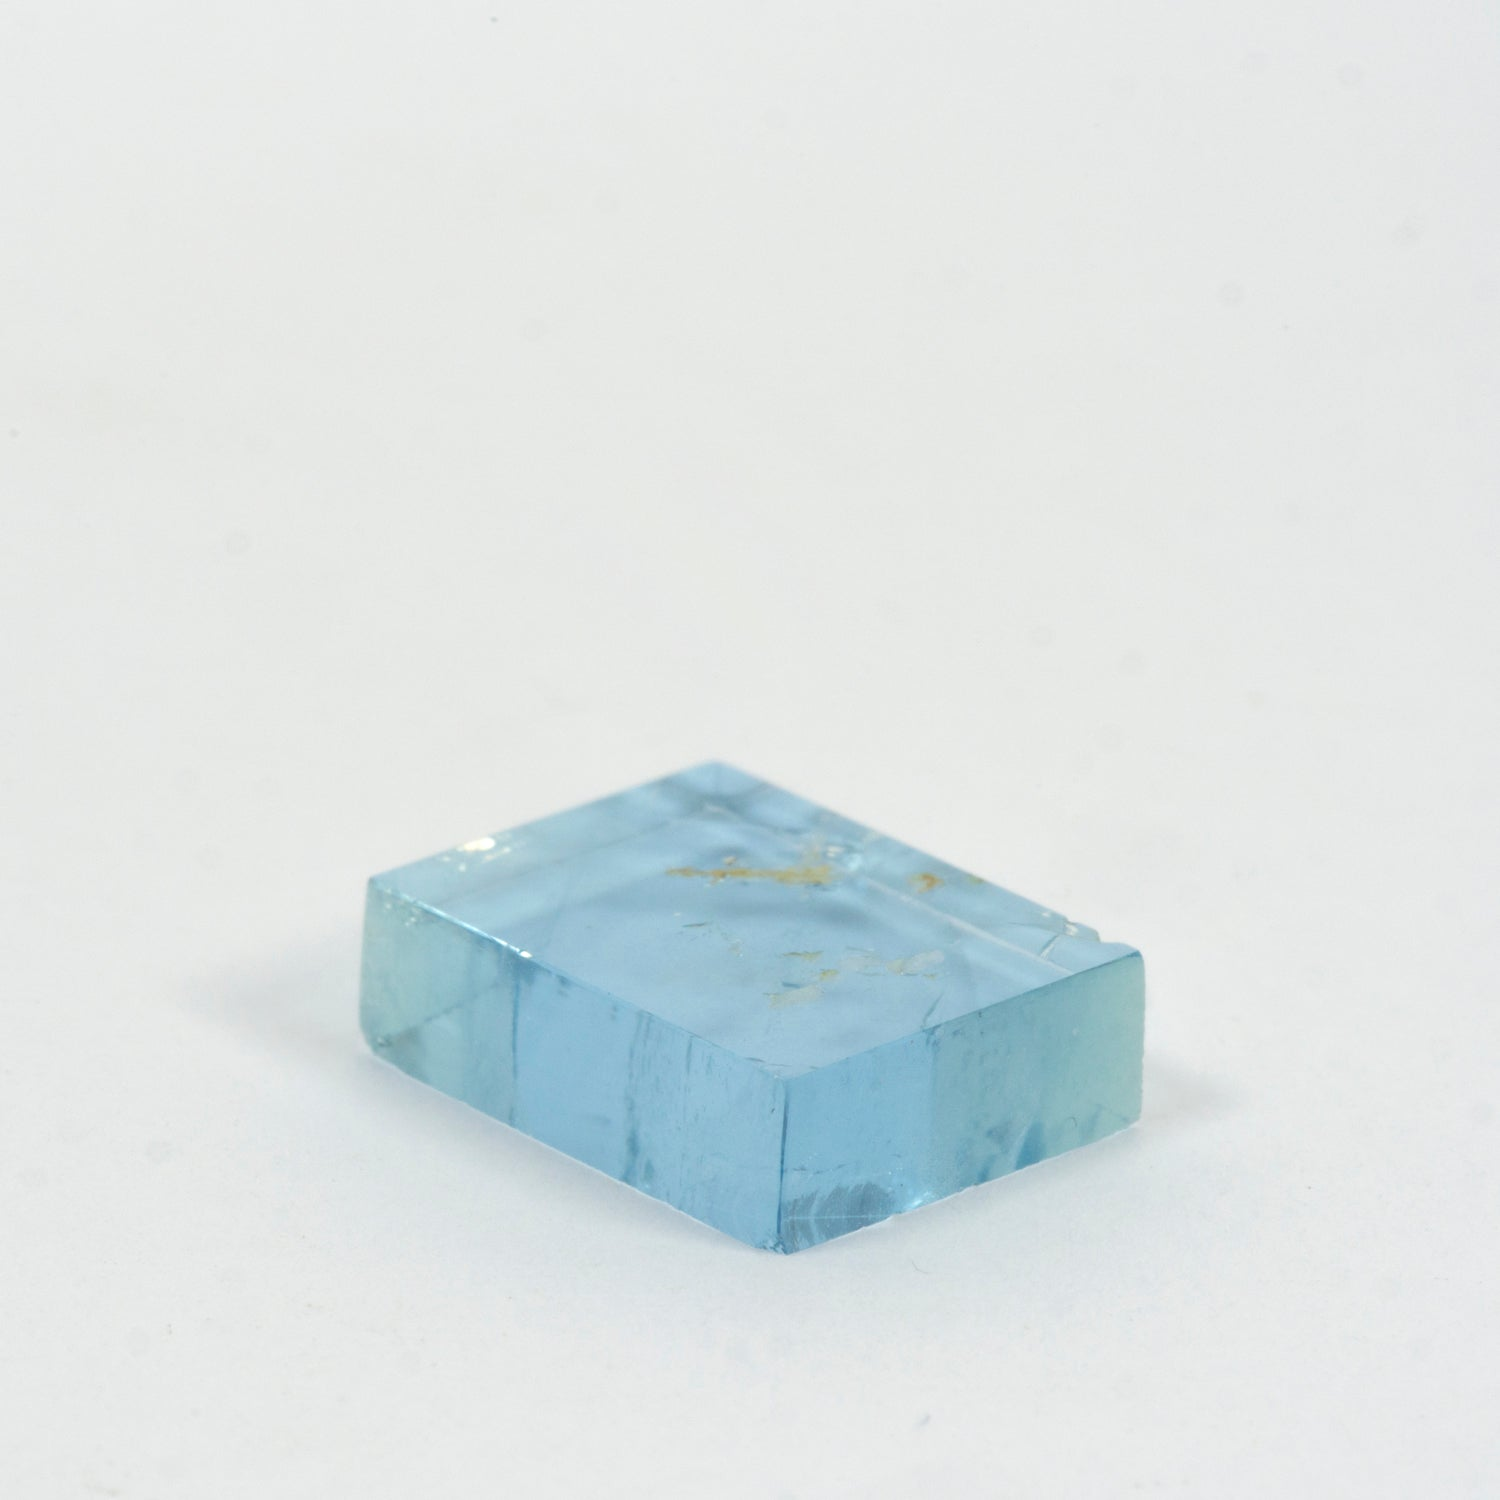 7.74ct Bespoke Rectangular Flat Cut Aquamarine ,5.68ct Bespoke Geo Cut Aquamarine, beautiful aquamarine gemstone in pale sea green, sparkling pale blue beauty, bespoke cutting, responsible sourcing in Mozambique